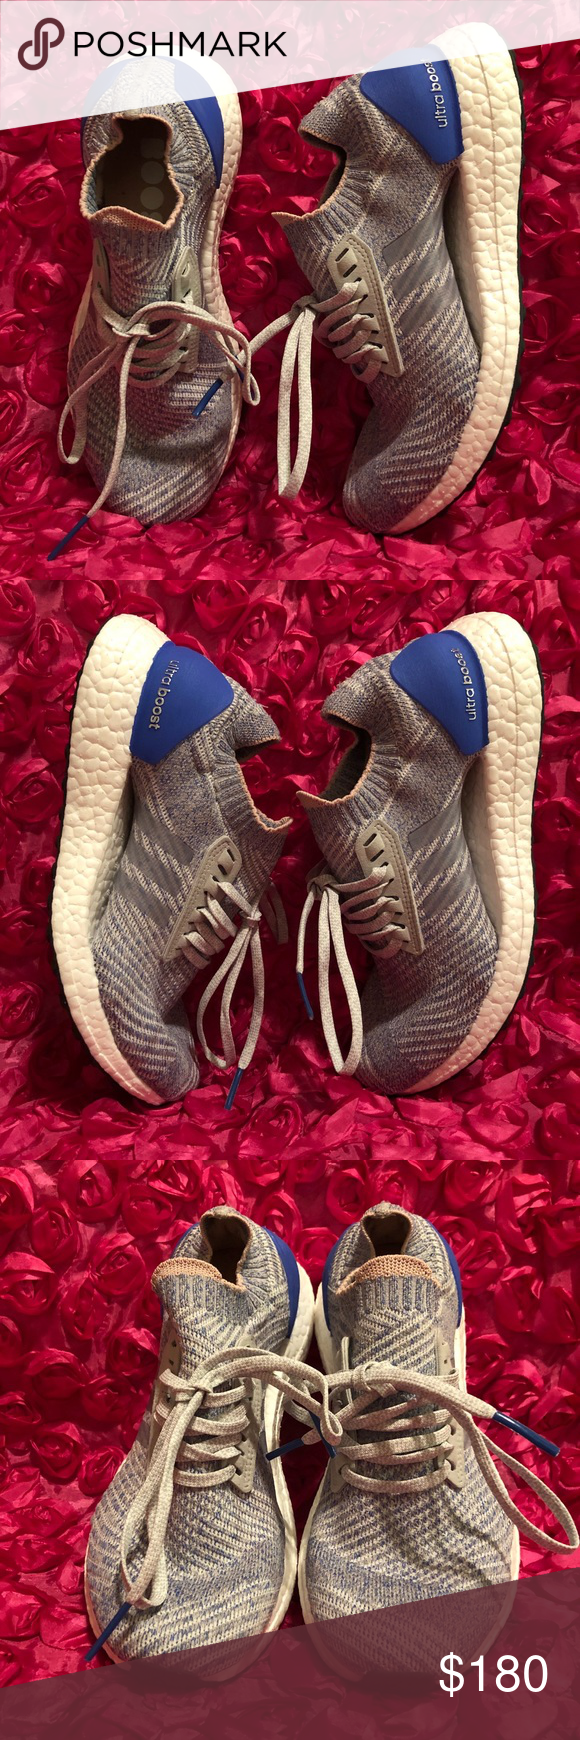 a5931fa622d WOMEN RUNNING ULTRABOOST X SHOES Brand new never worn No box 📦 Color  GREY  TWO